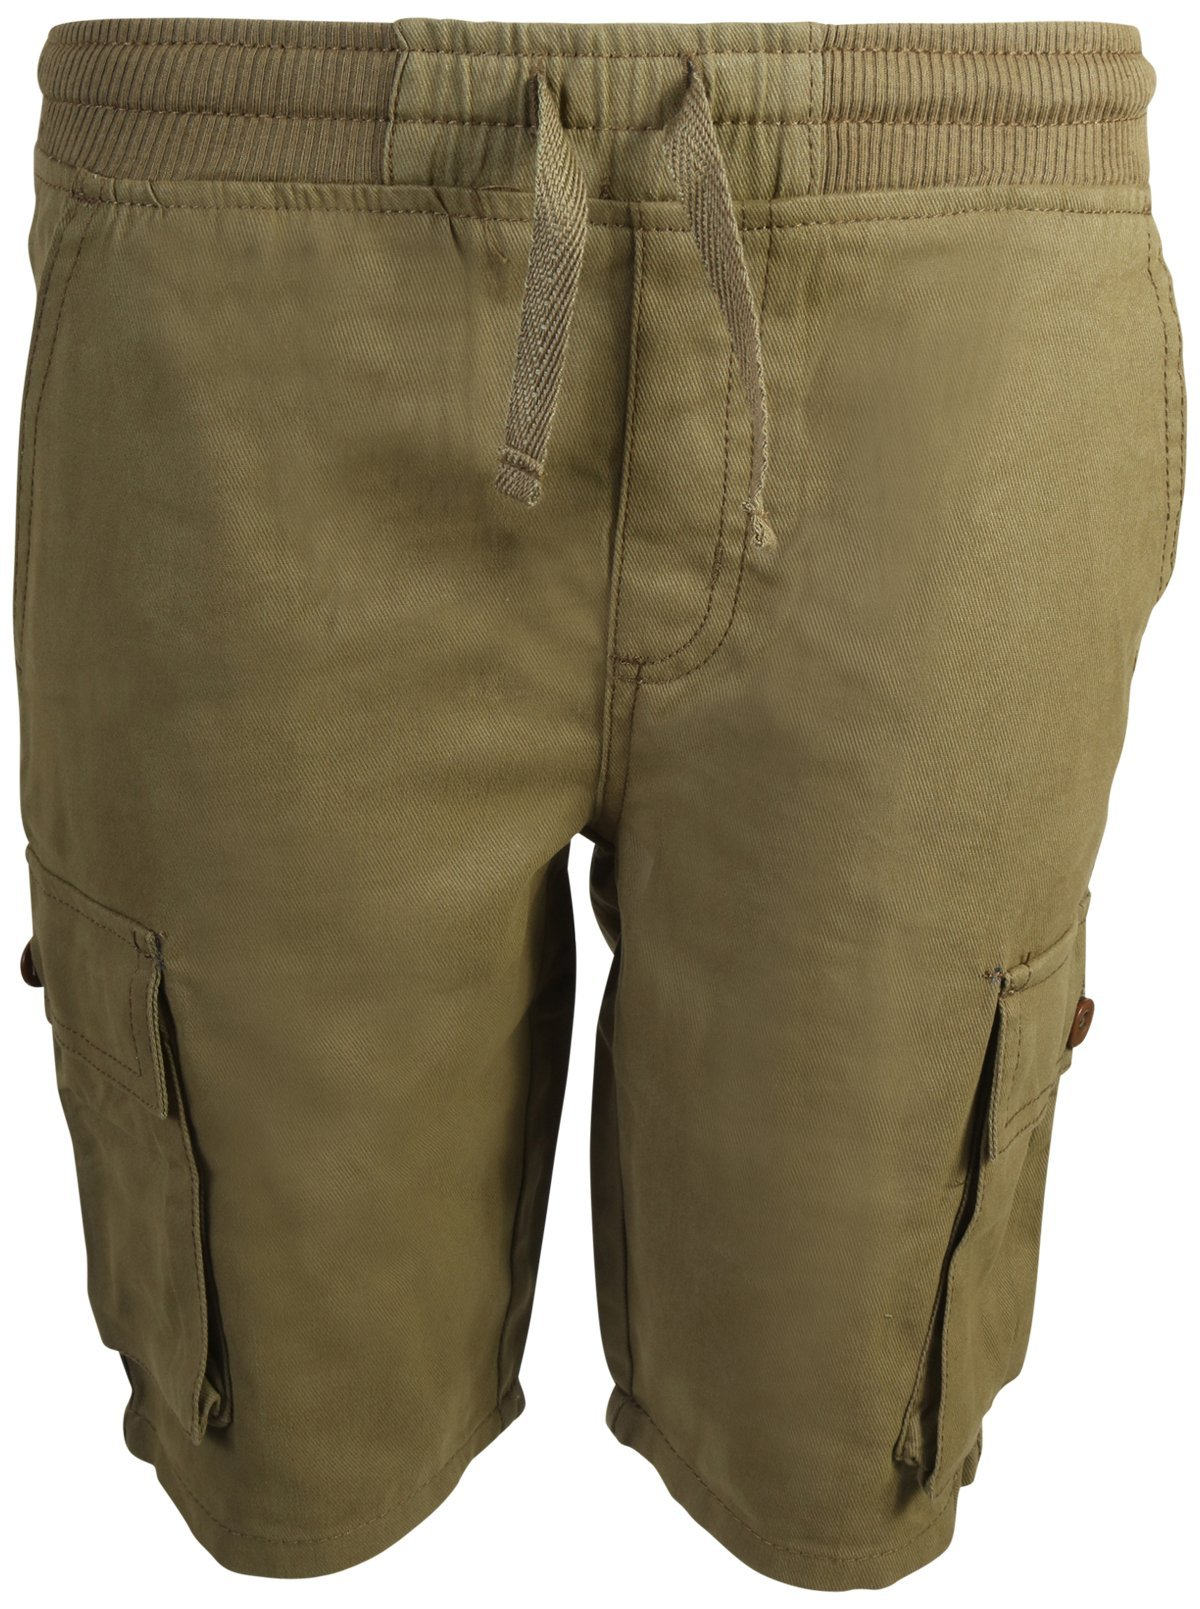 Quad Seven Boys Pull-On Twill Cargo Shorts, Olive, Size 6'